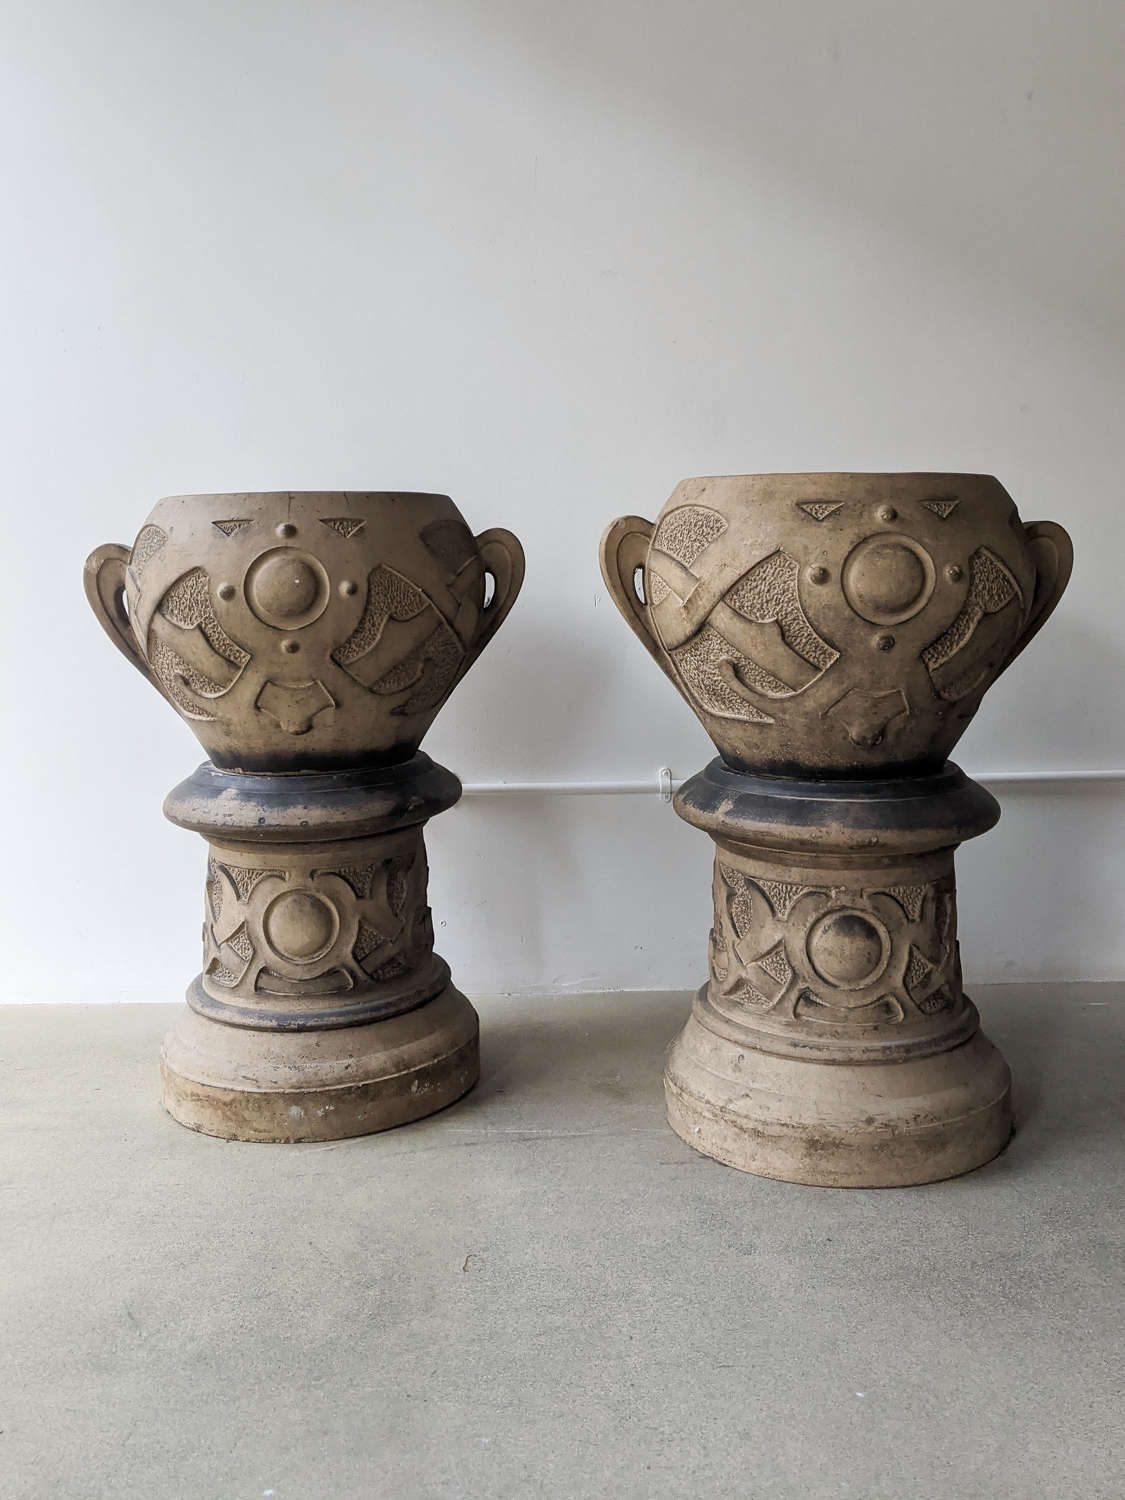 C1900 A Pair of Art Nouveau Urns on Stands.